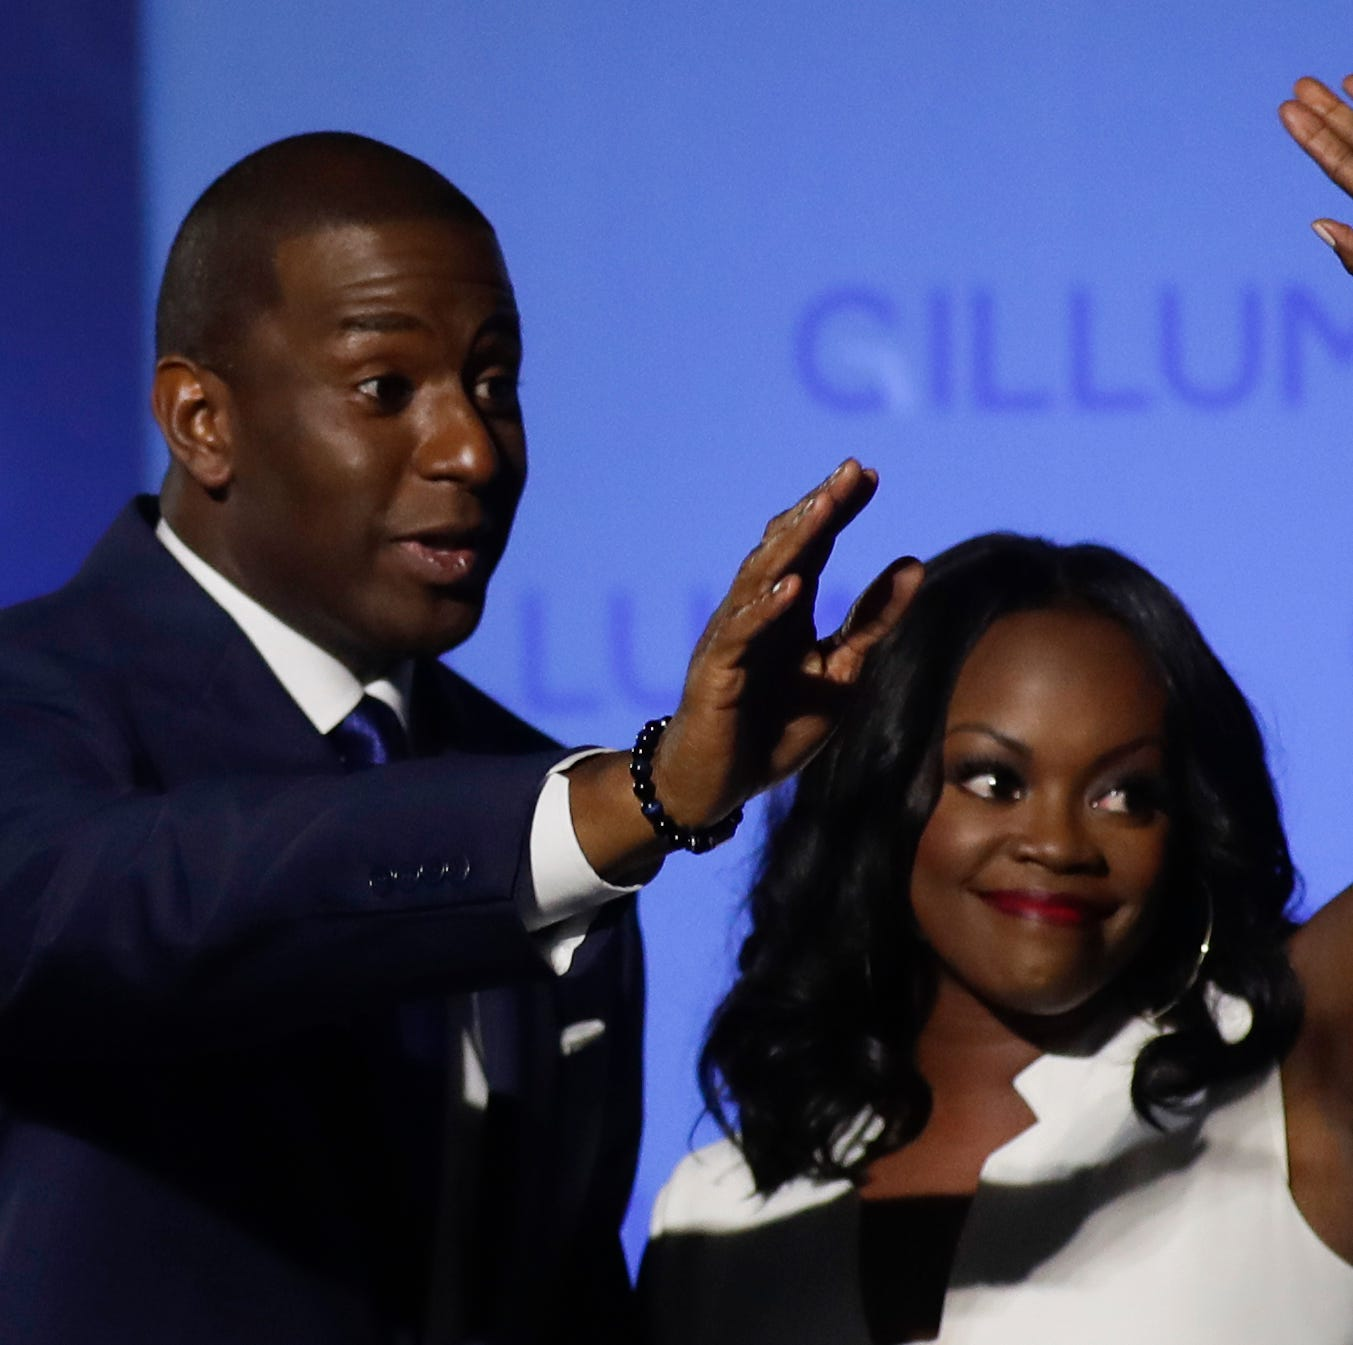 Election 2018 overtime: Andrew Gillum pulls back concession as Ron DeSantis calls for unity